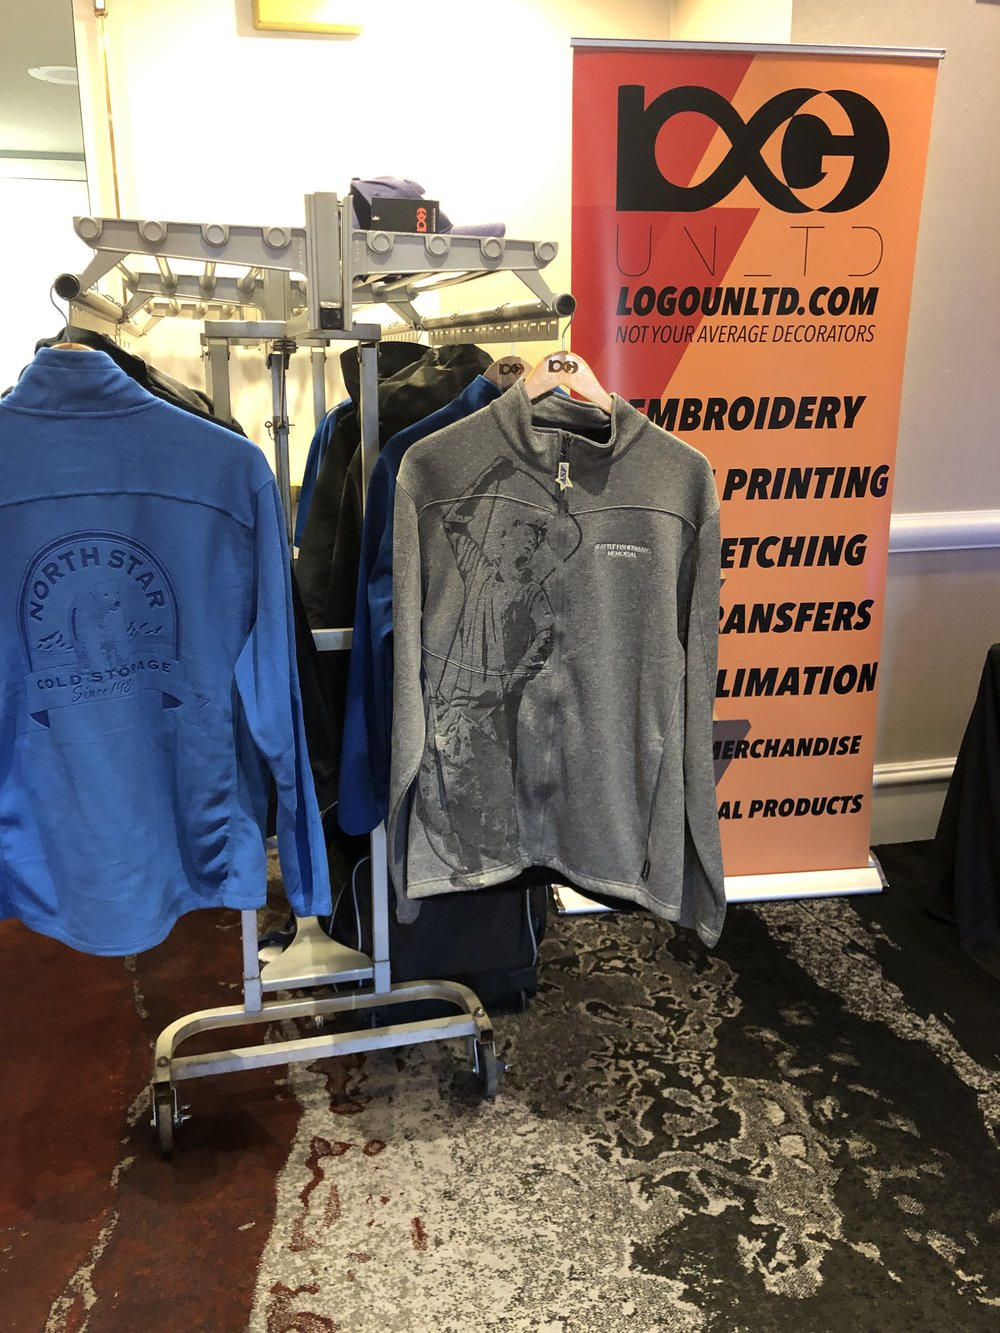 logounltd_laser_etching_embroidery_screen_printing_apparel_uniform_custom_tshirts_kirkland_bellevue_seattle_redmond_woodinville_branded_merchandise_promotional_products_logo_unltd_ tshirts_design_custom_fishing_al (4).jpg